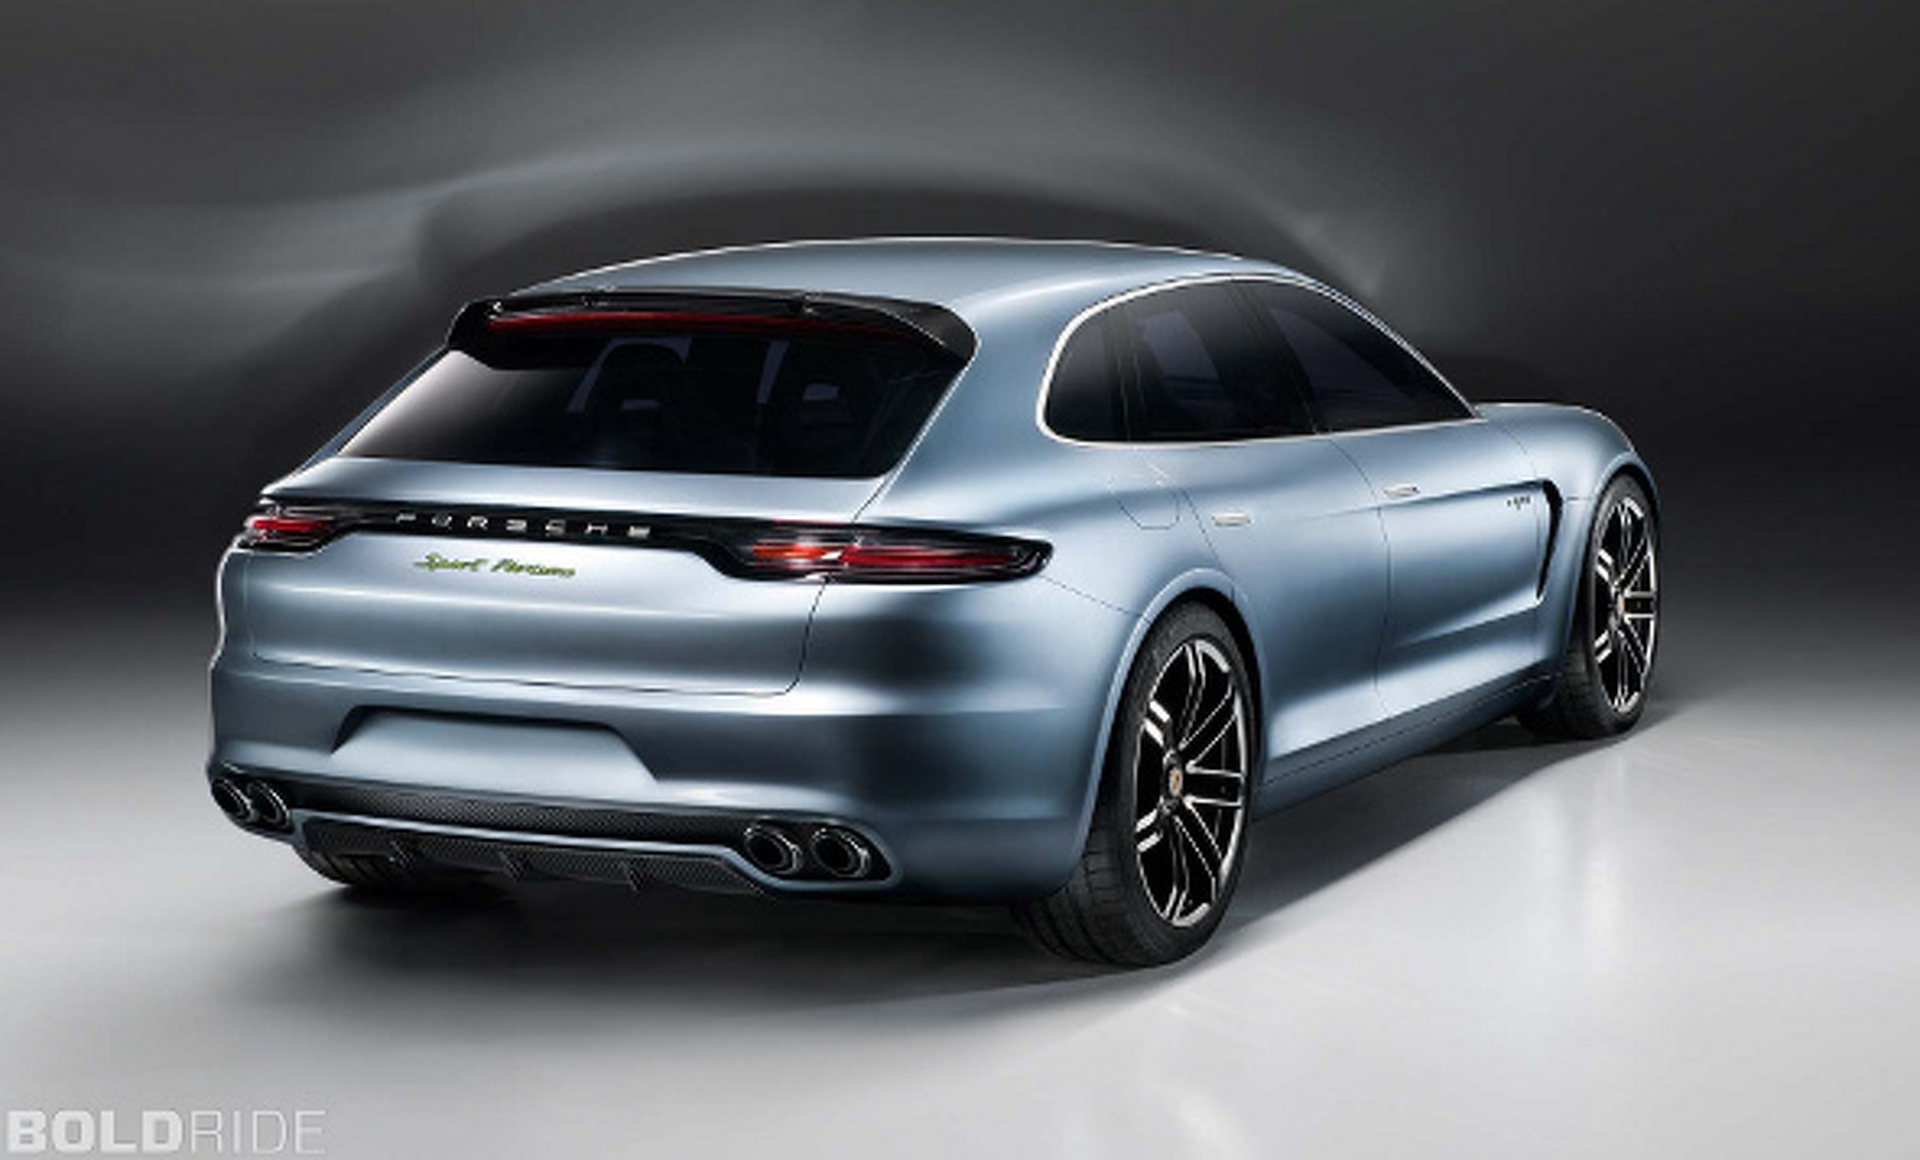 Porsche Panamera Sport Turismo: A Sign of Things to Come